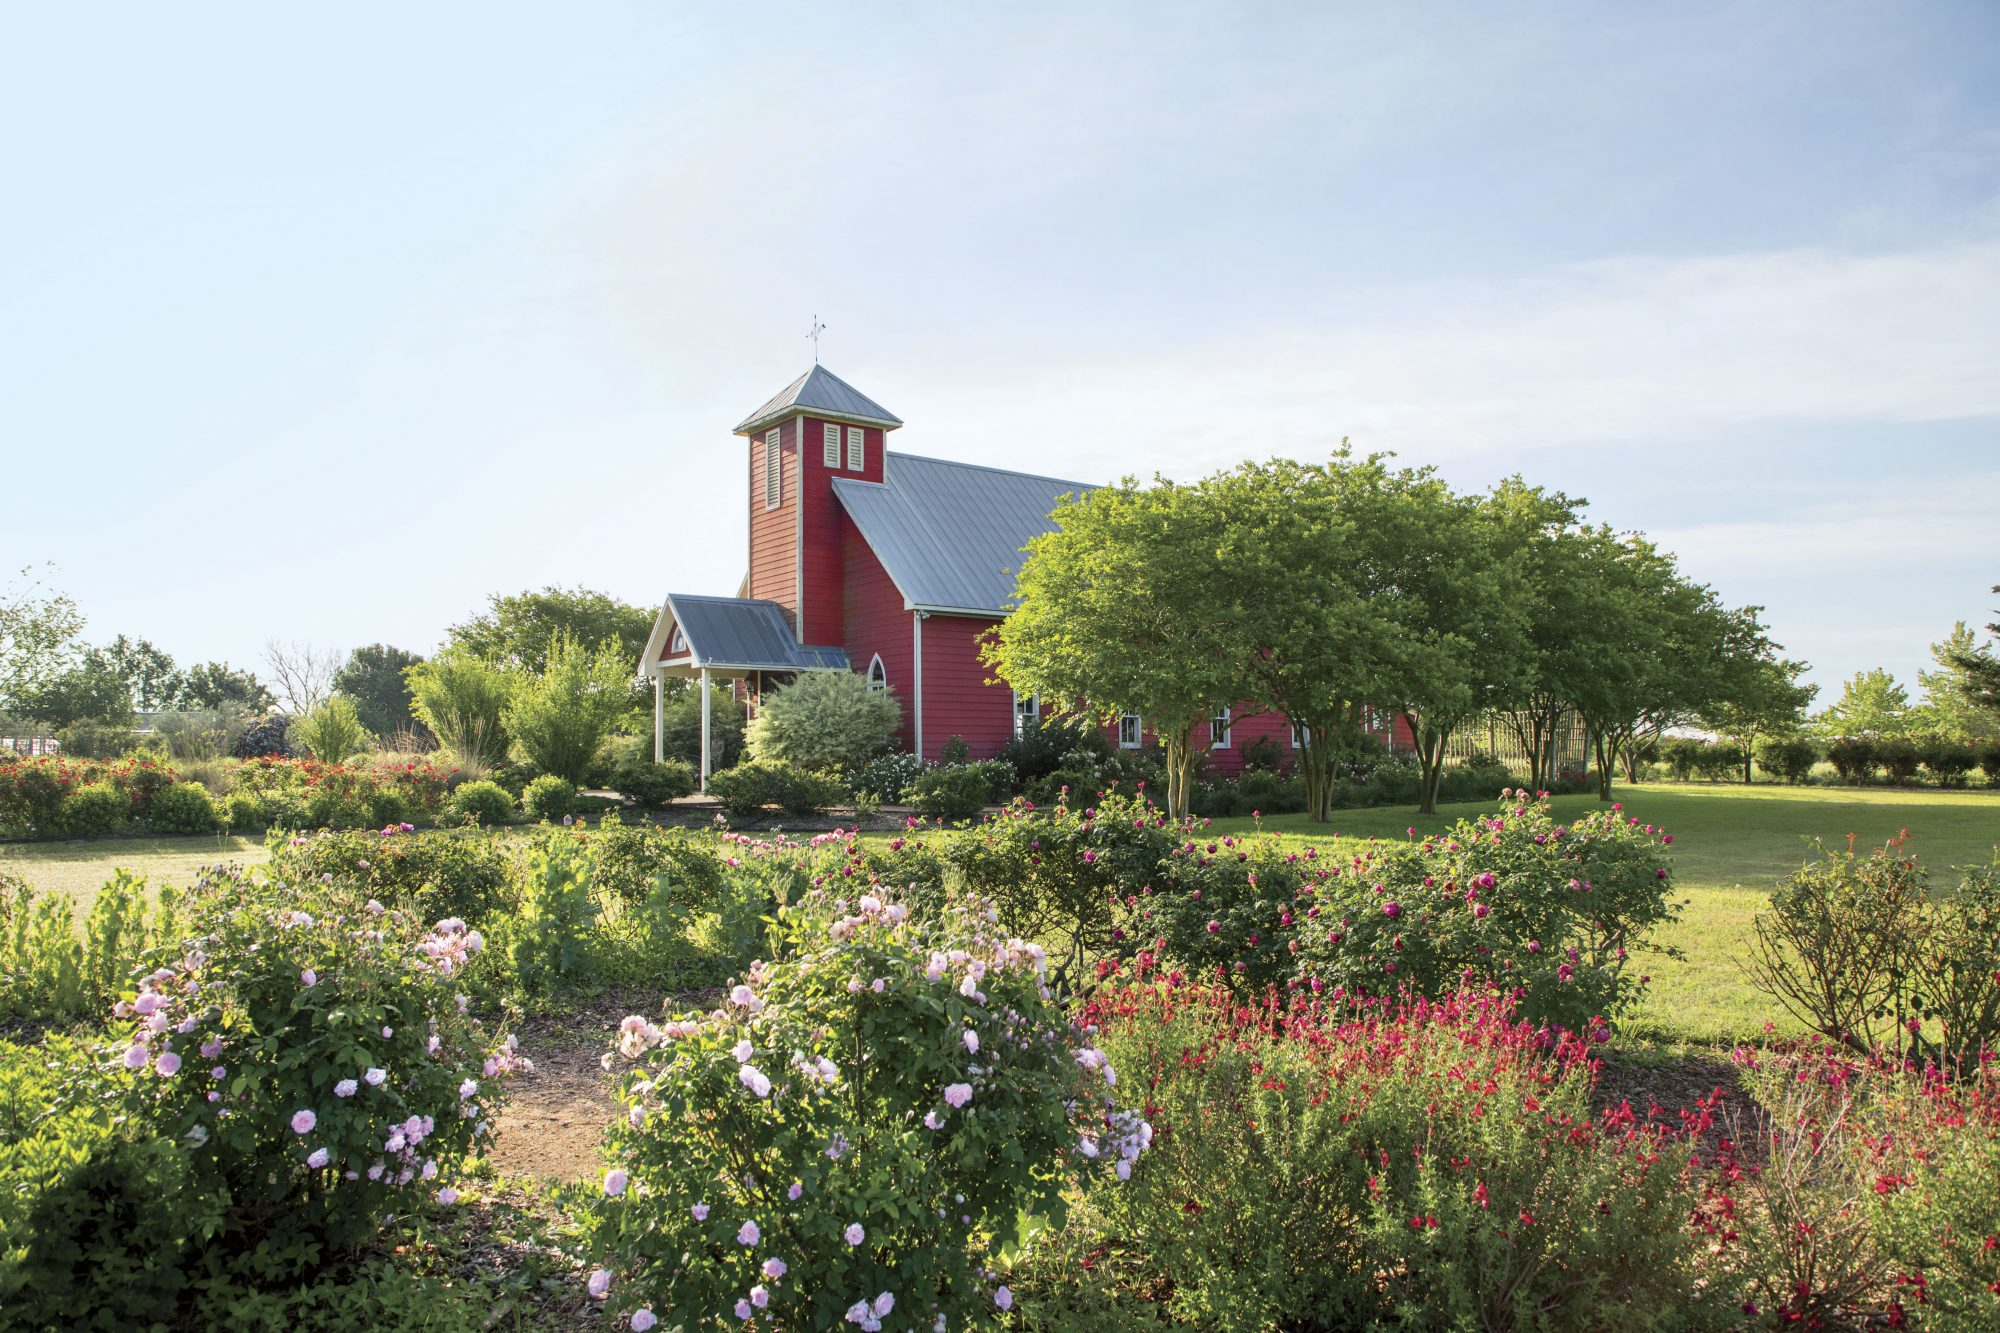 Antique Rose Emporium Barn in Brenham, TX